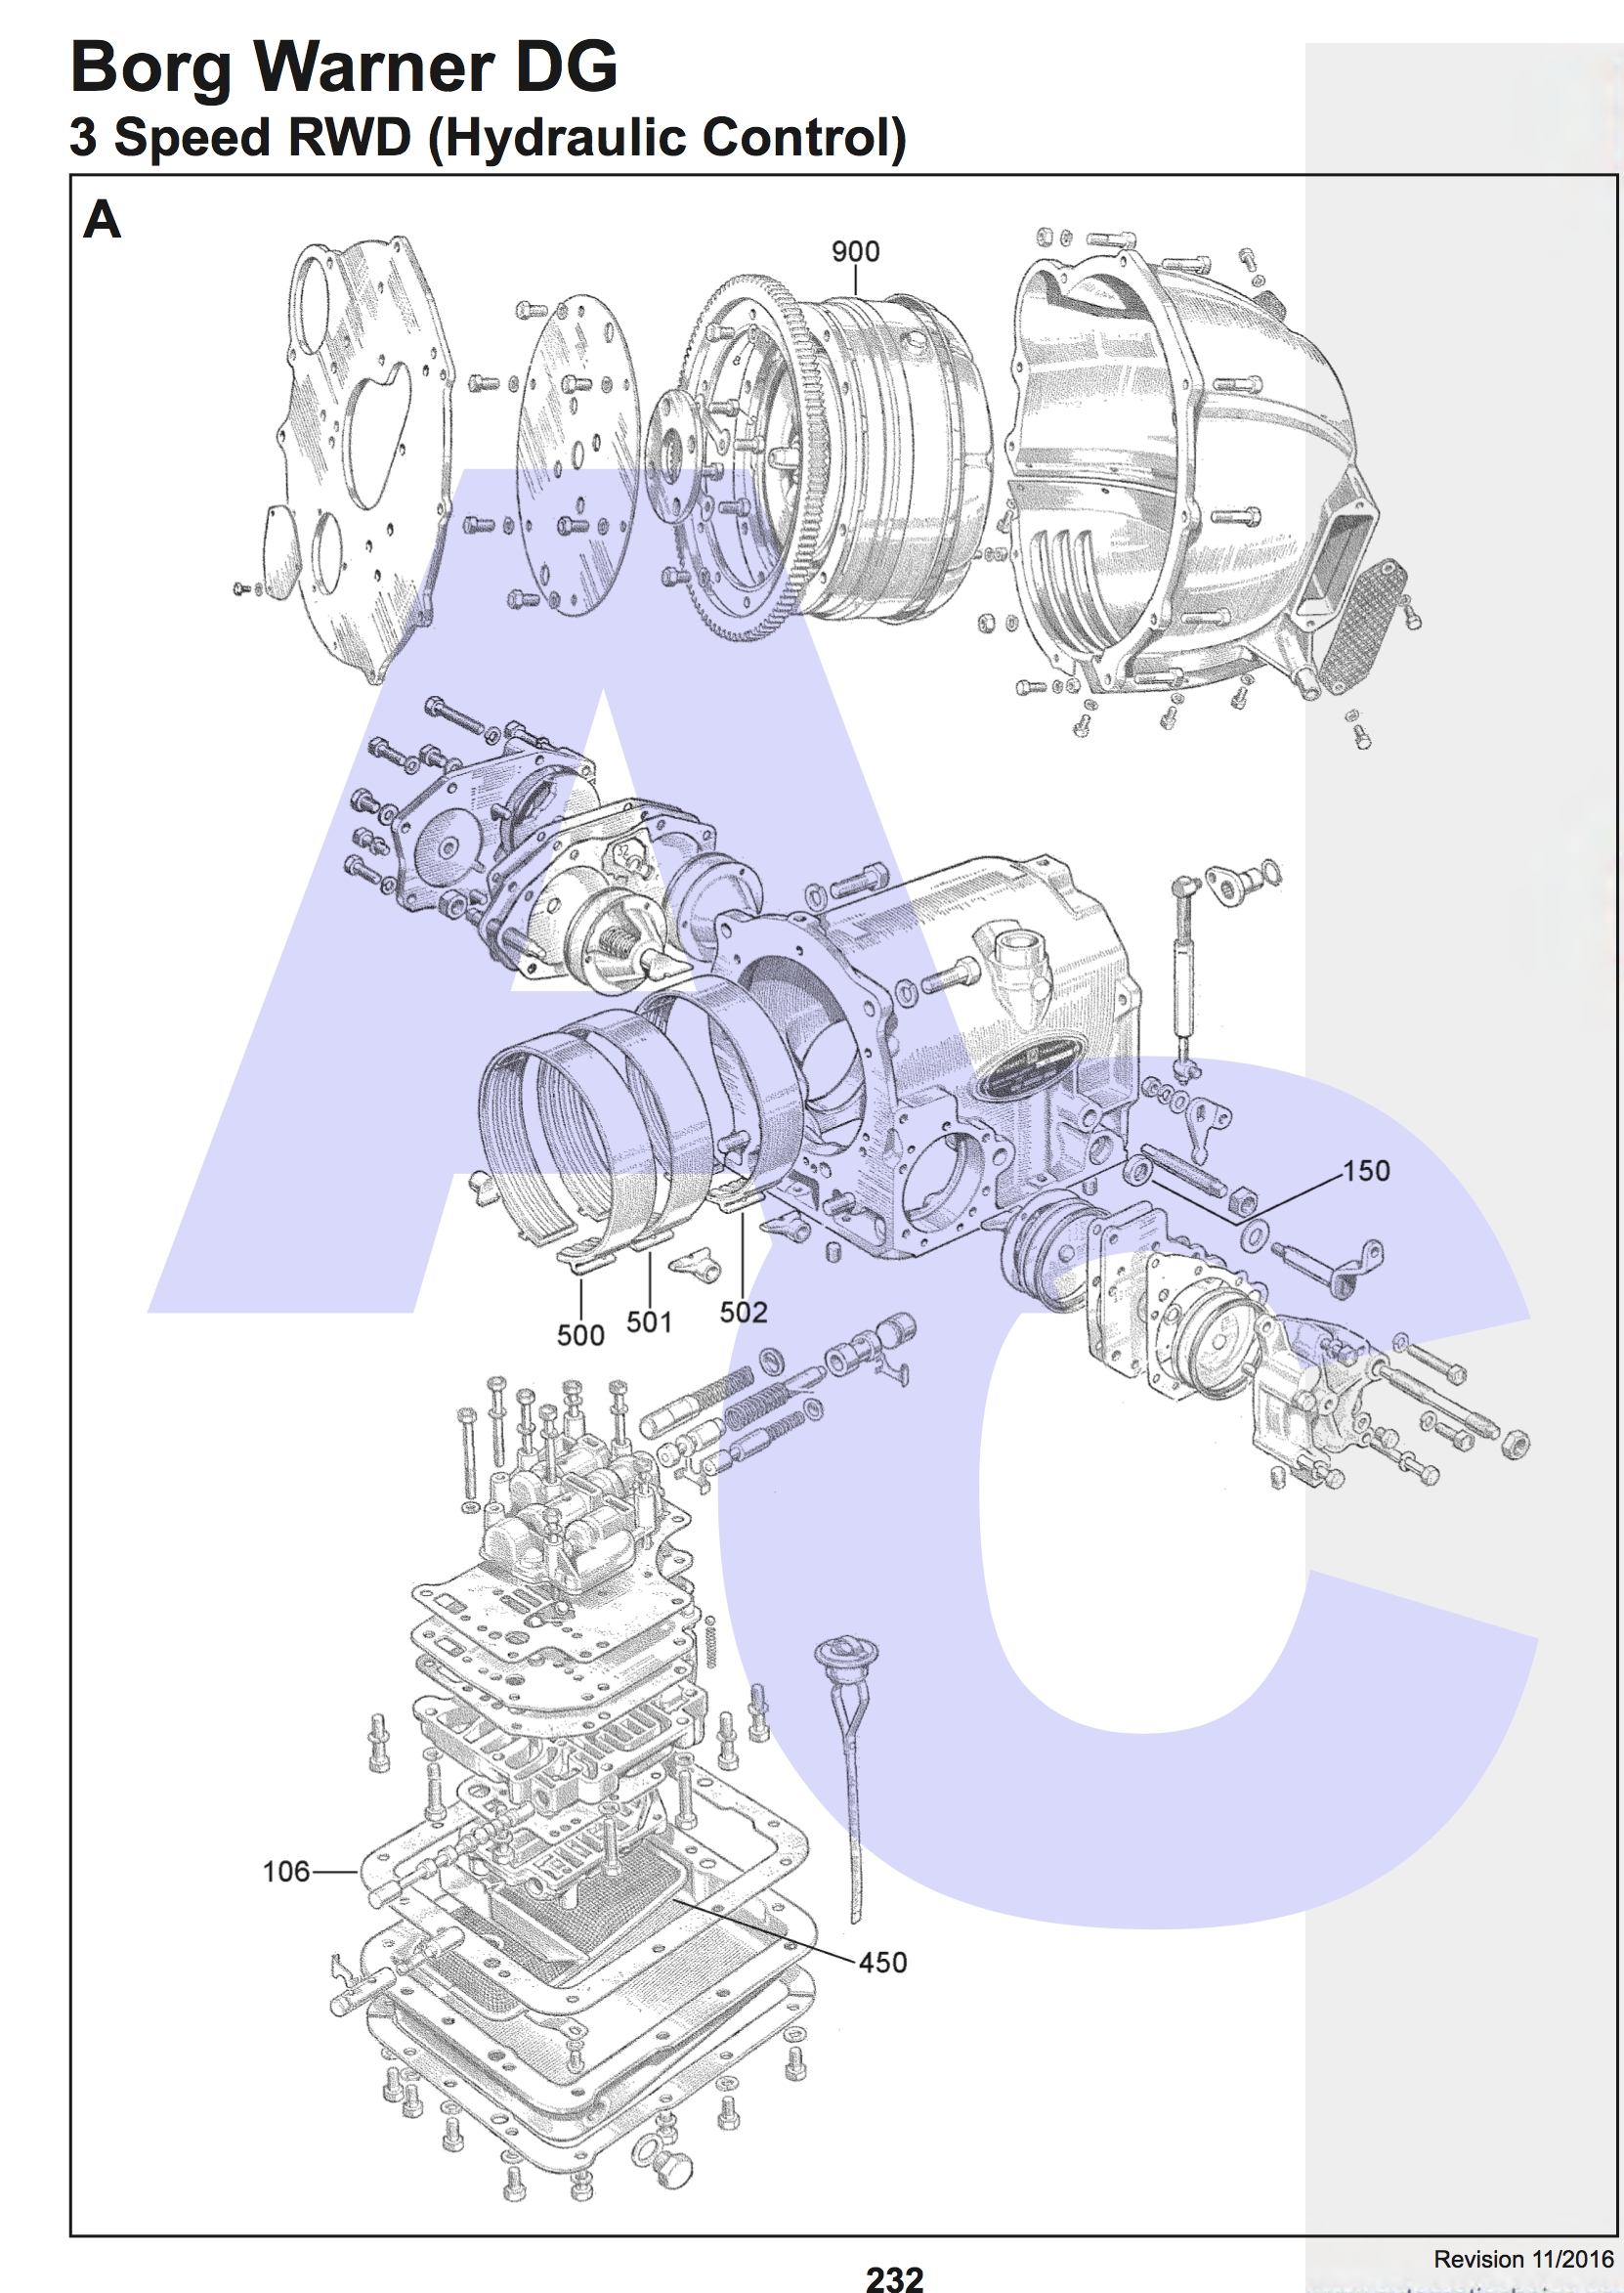 Bobs Studebaker Resource And Information Portal Dg 200 Automatic Borg Warner Truck Wiring Diagram Part Manual Pages Page 232